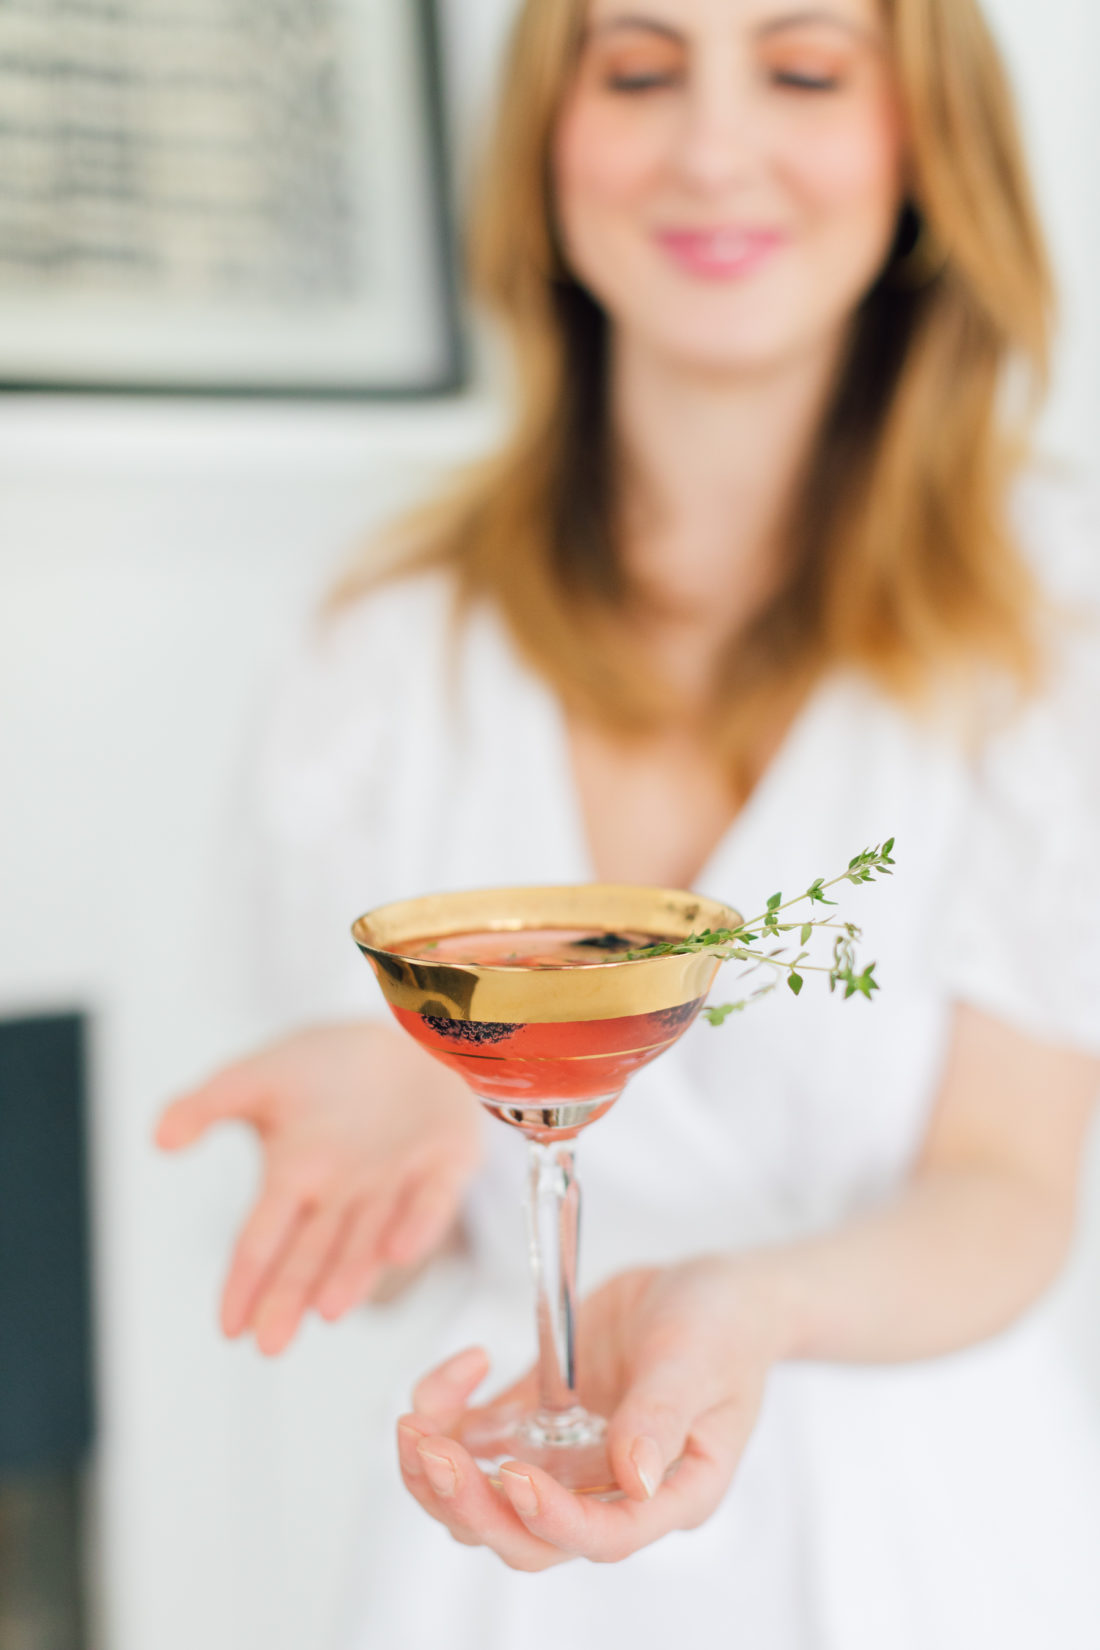 Eva Amurri Martino of Happily Eva After shares her Mommy Juice Cocktail for Mother's Day